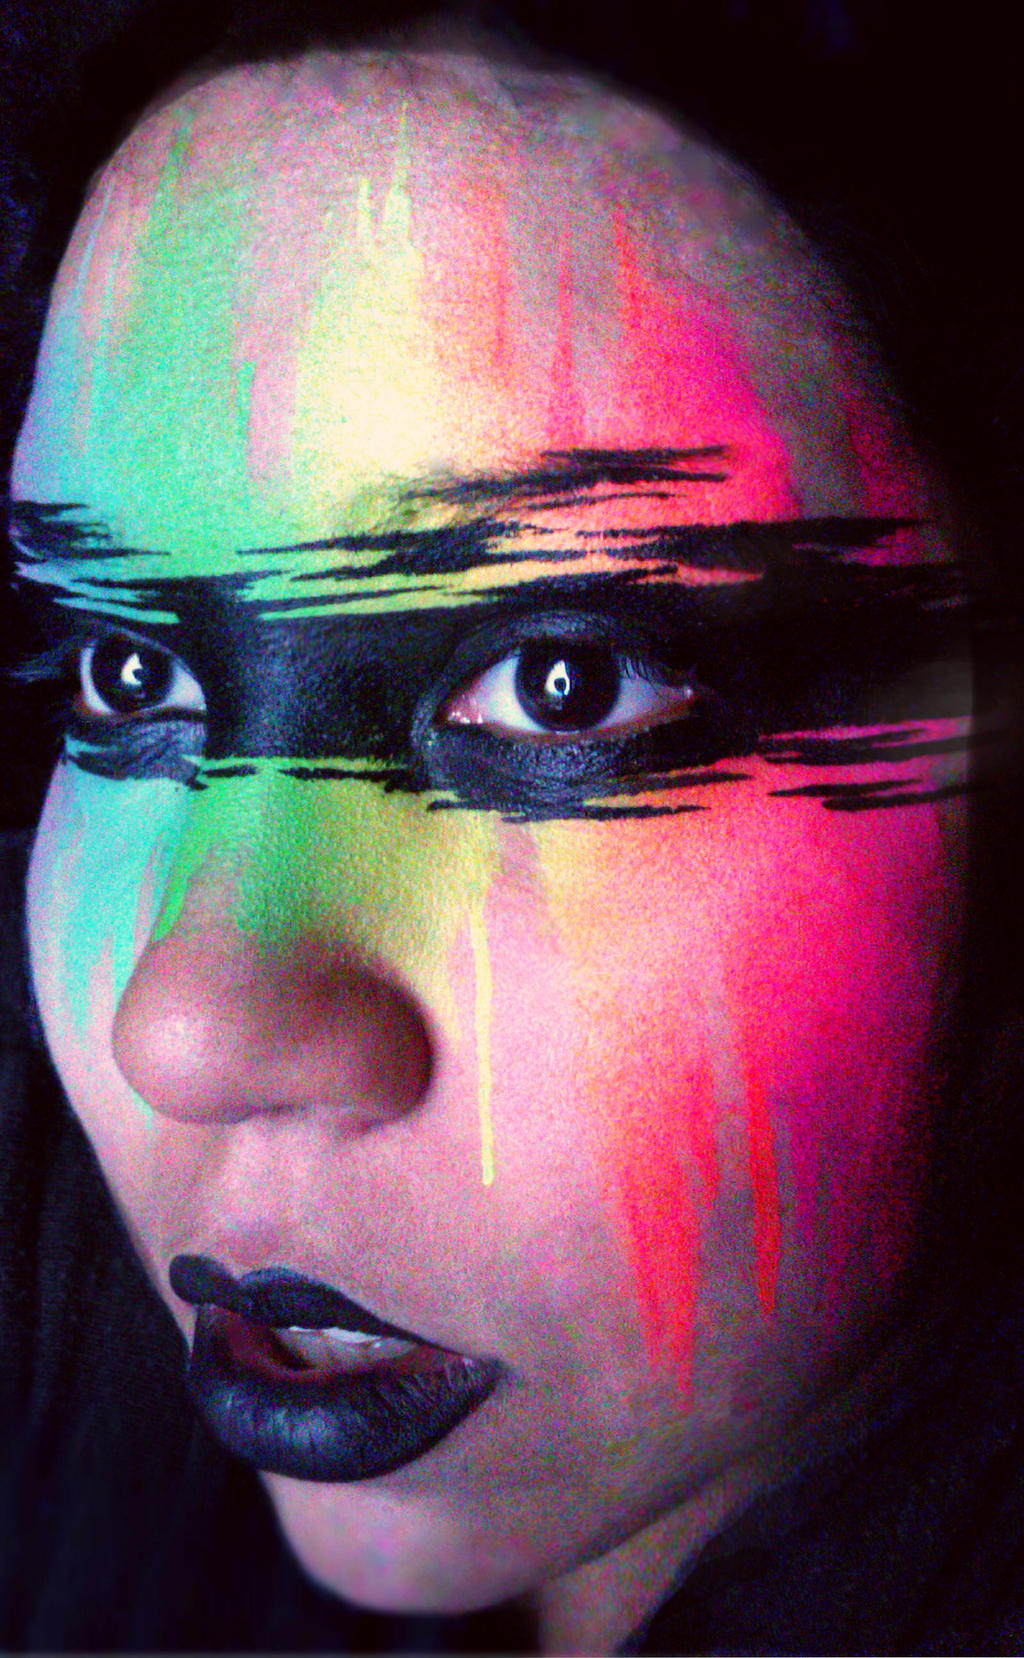 the rainbow Bandit by ARTSIE-FARTSIE-PAINT